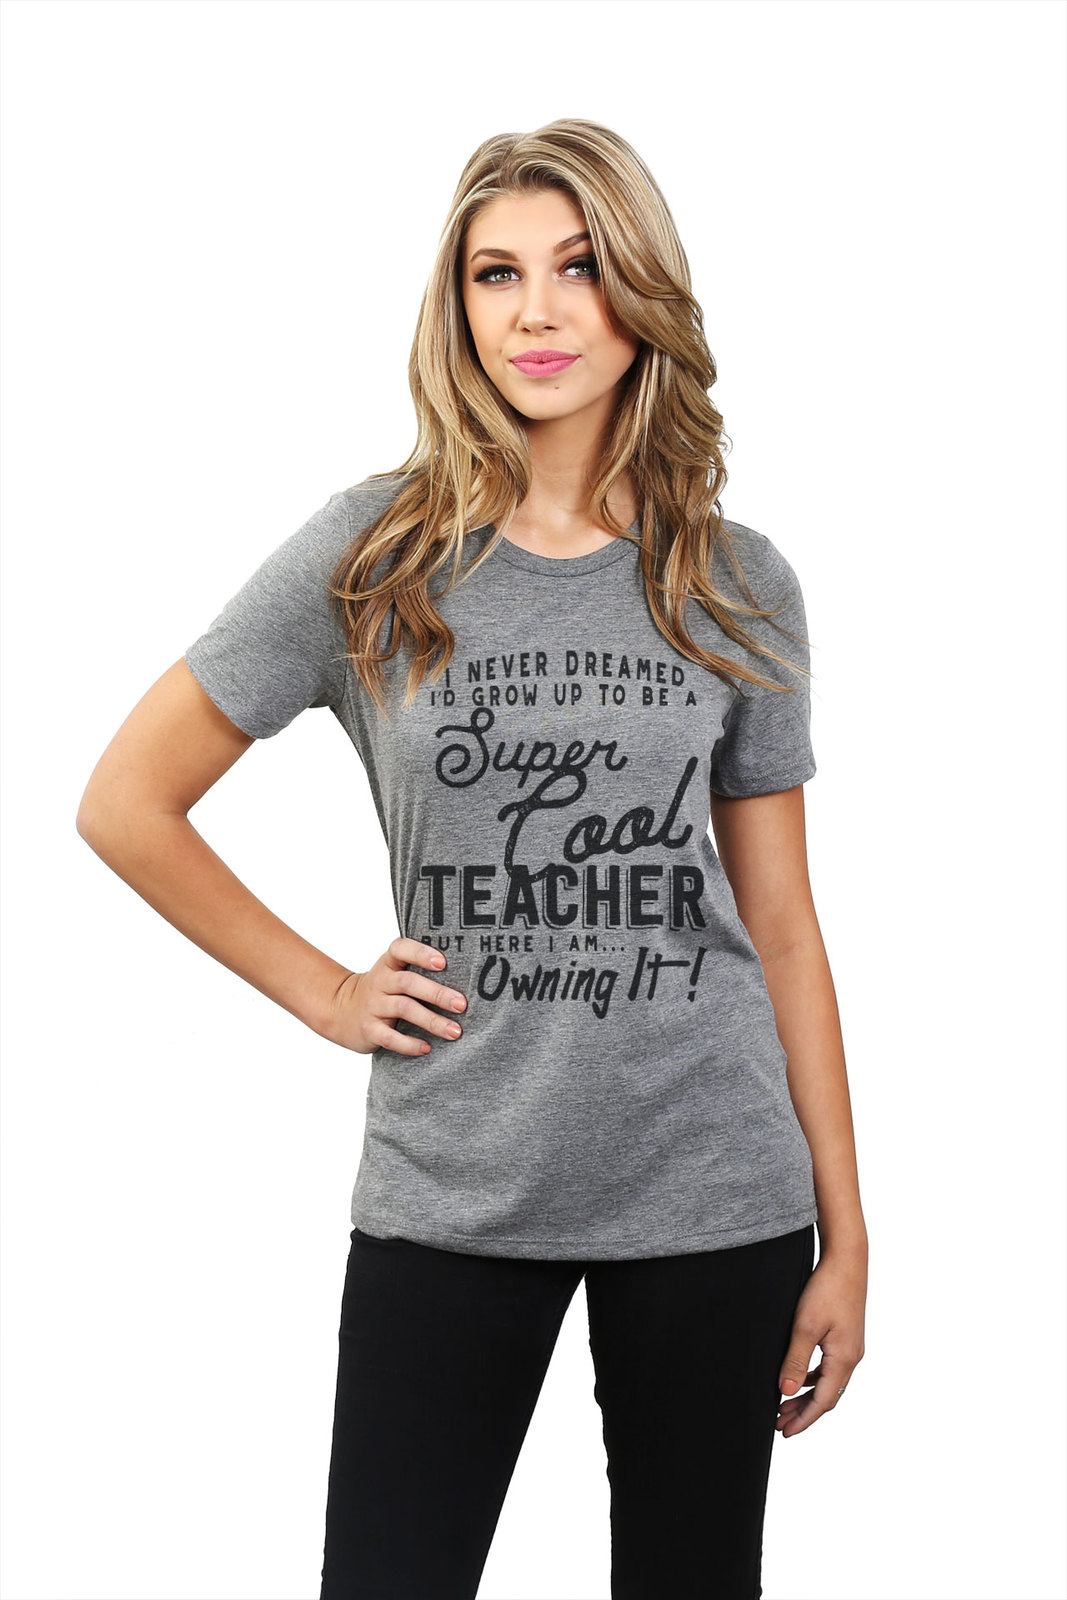 Thread Tank Super Cool Teacher Women's Relaxed T-Shirt Tee Heather Grey